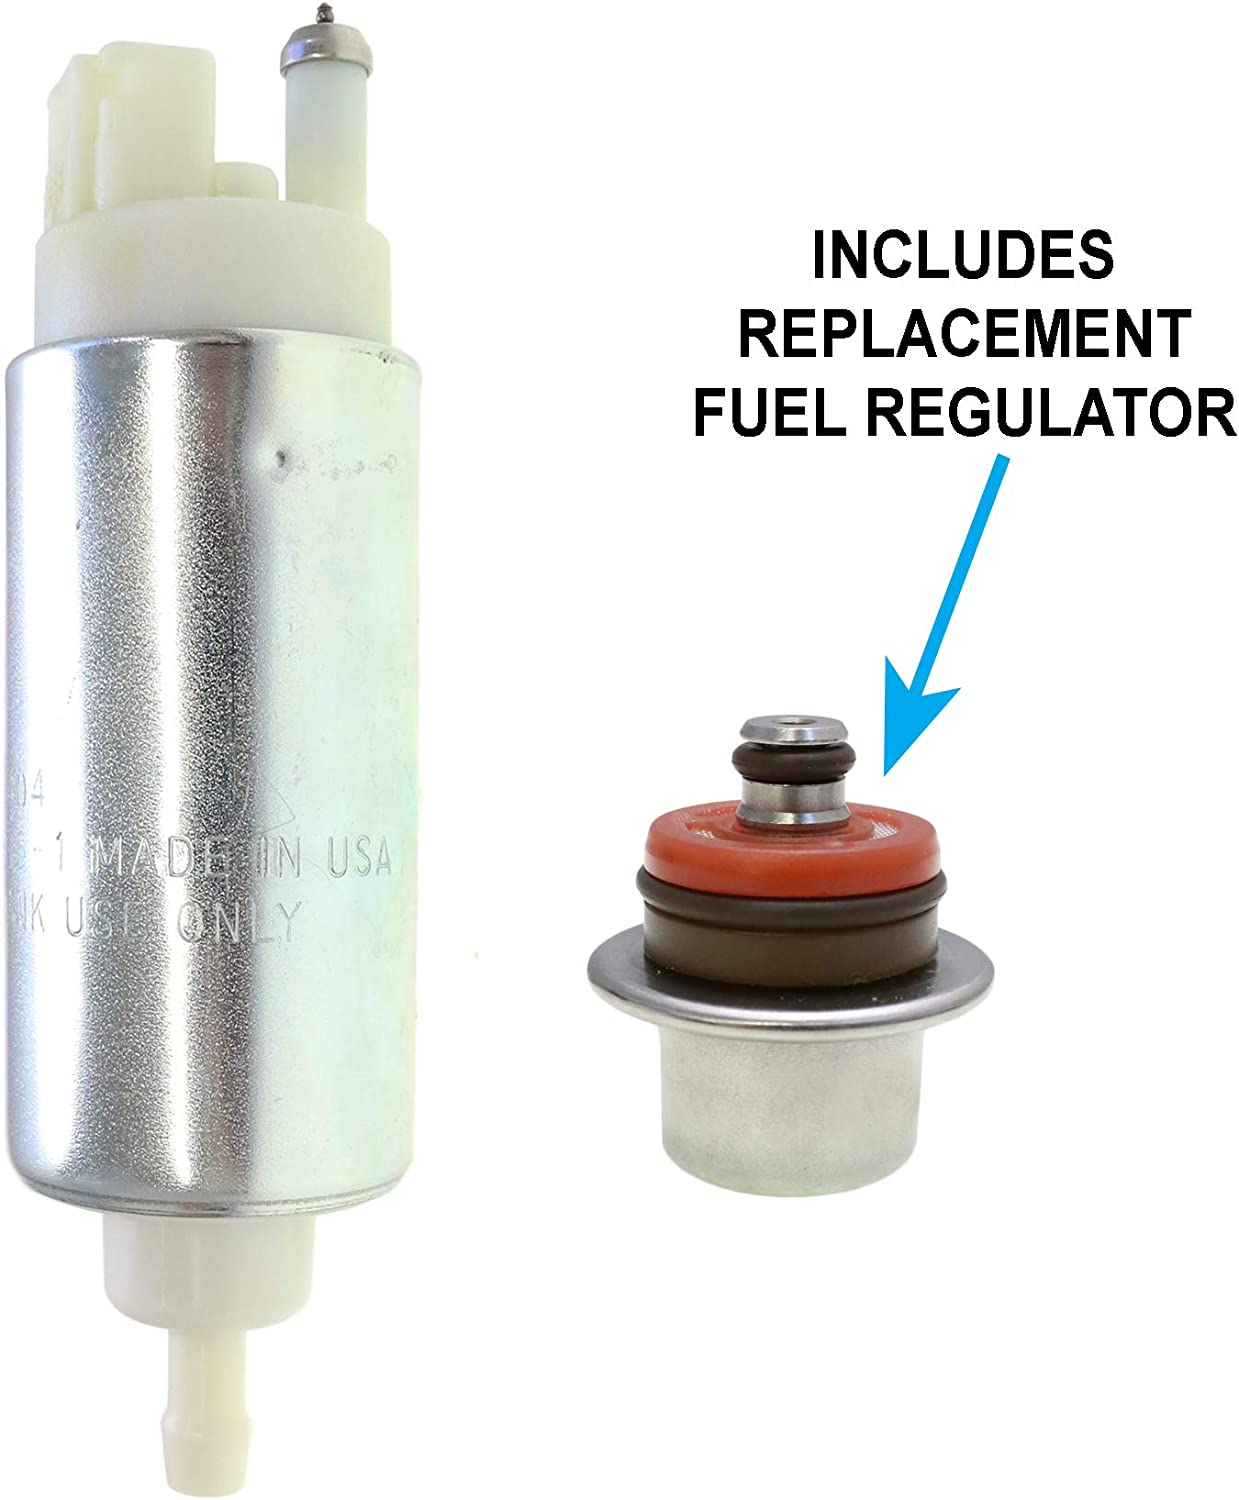 2521047 2520856 2520872 2520874 2521044 HFP-PPN28-R Genuine OEM Fuel Pump with Regulator Replacement for Polaris 600 IQ Shift ES//IQ Touring Cleanfire//RMK//Voyager EFI Replaces 2521048 2877636